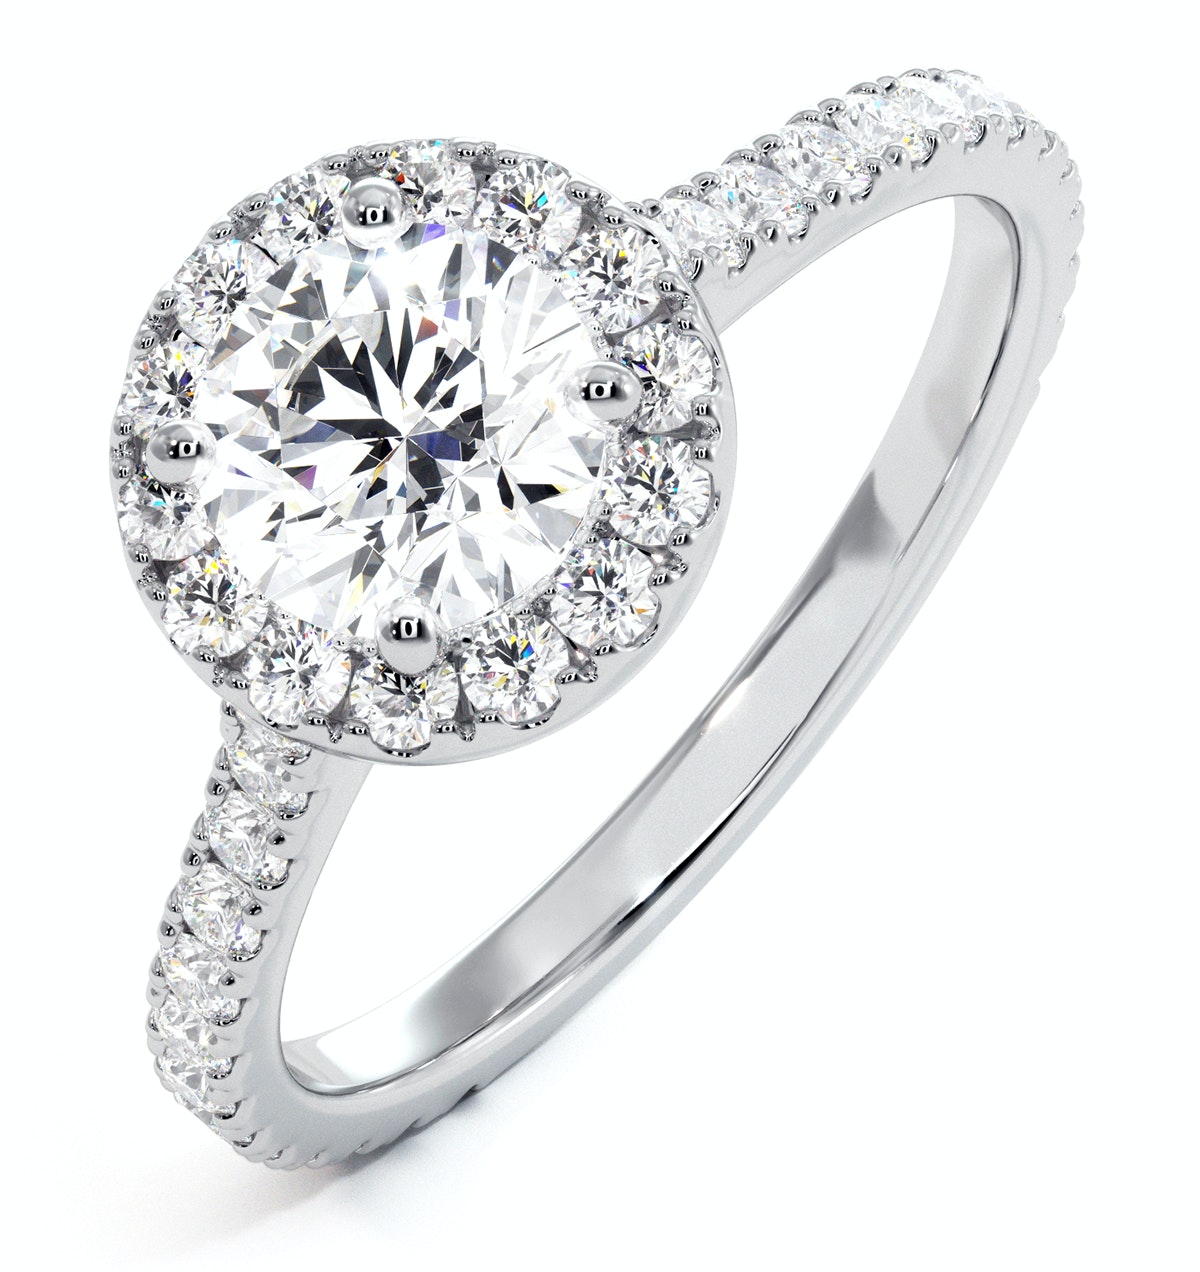 Reina GIA Diamond Halo Engagement Ring in 18K White Gold 1.40ct G/SI1